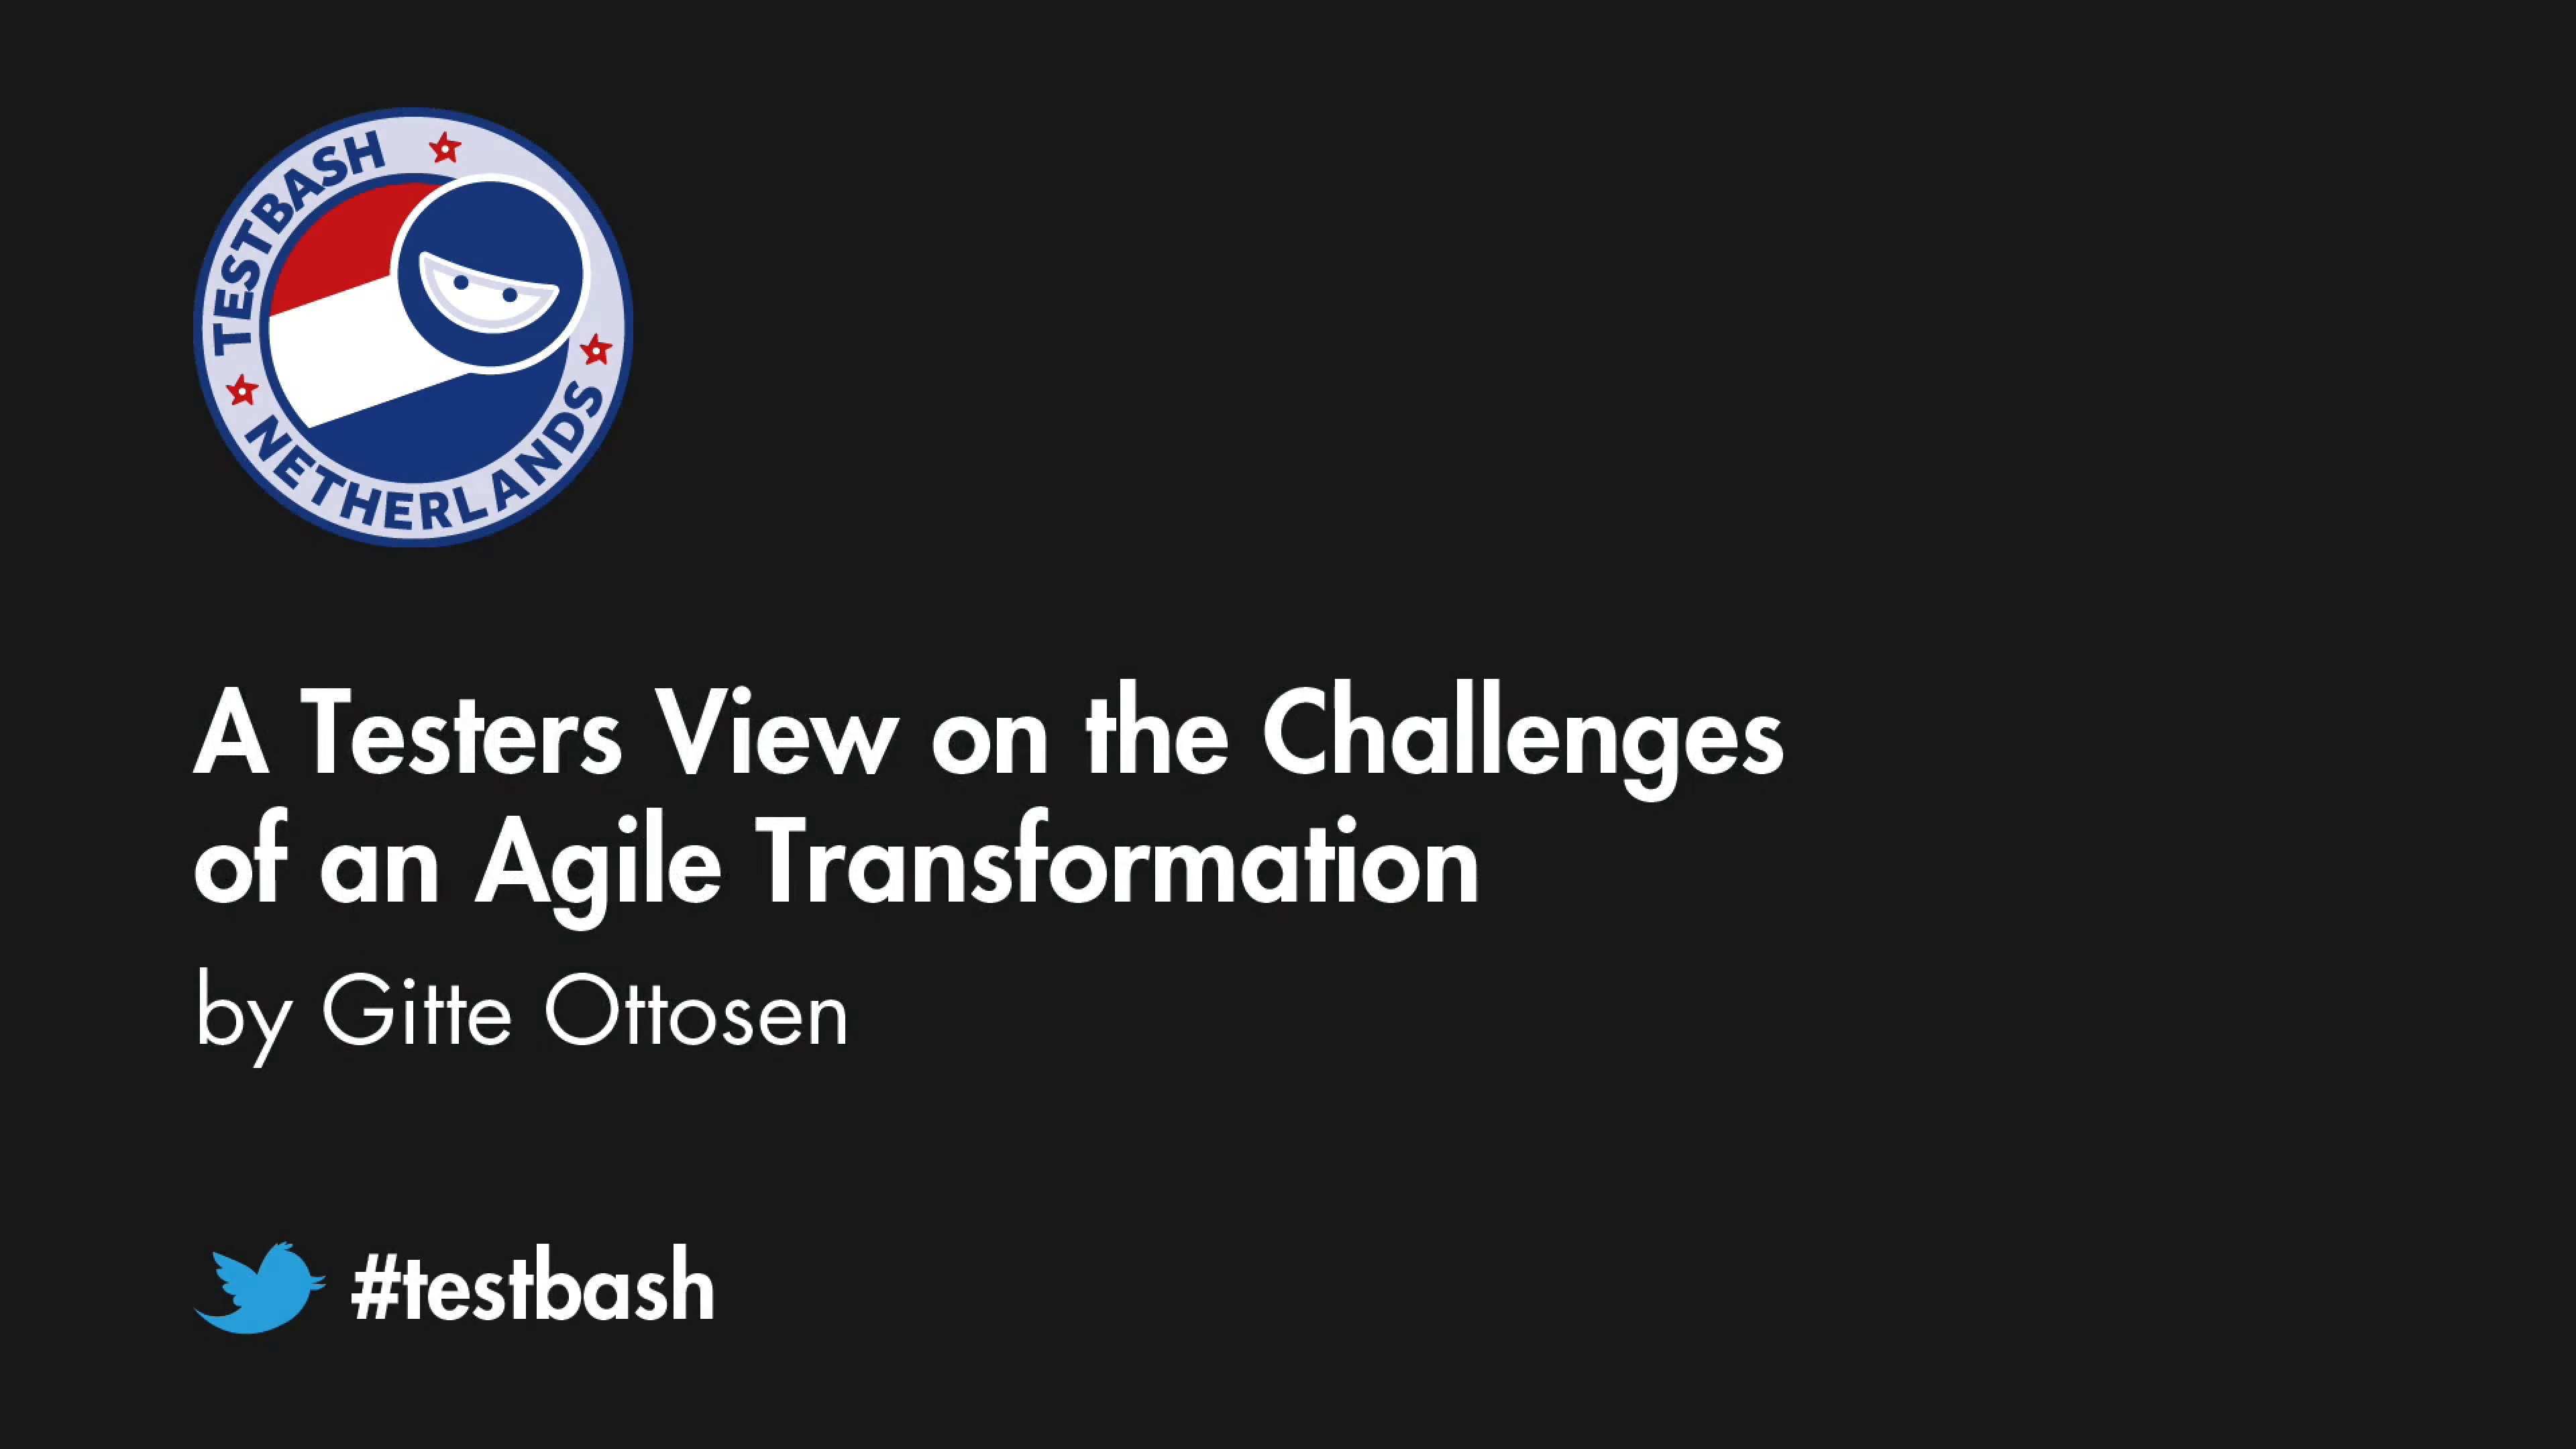 A Testers View on the Challenges of an Agile Transformation - Gitte Ottosen